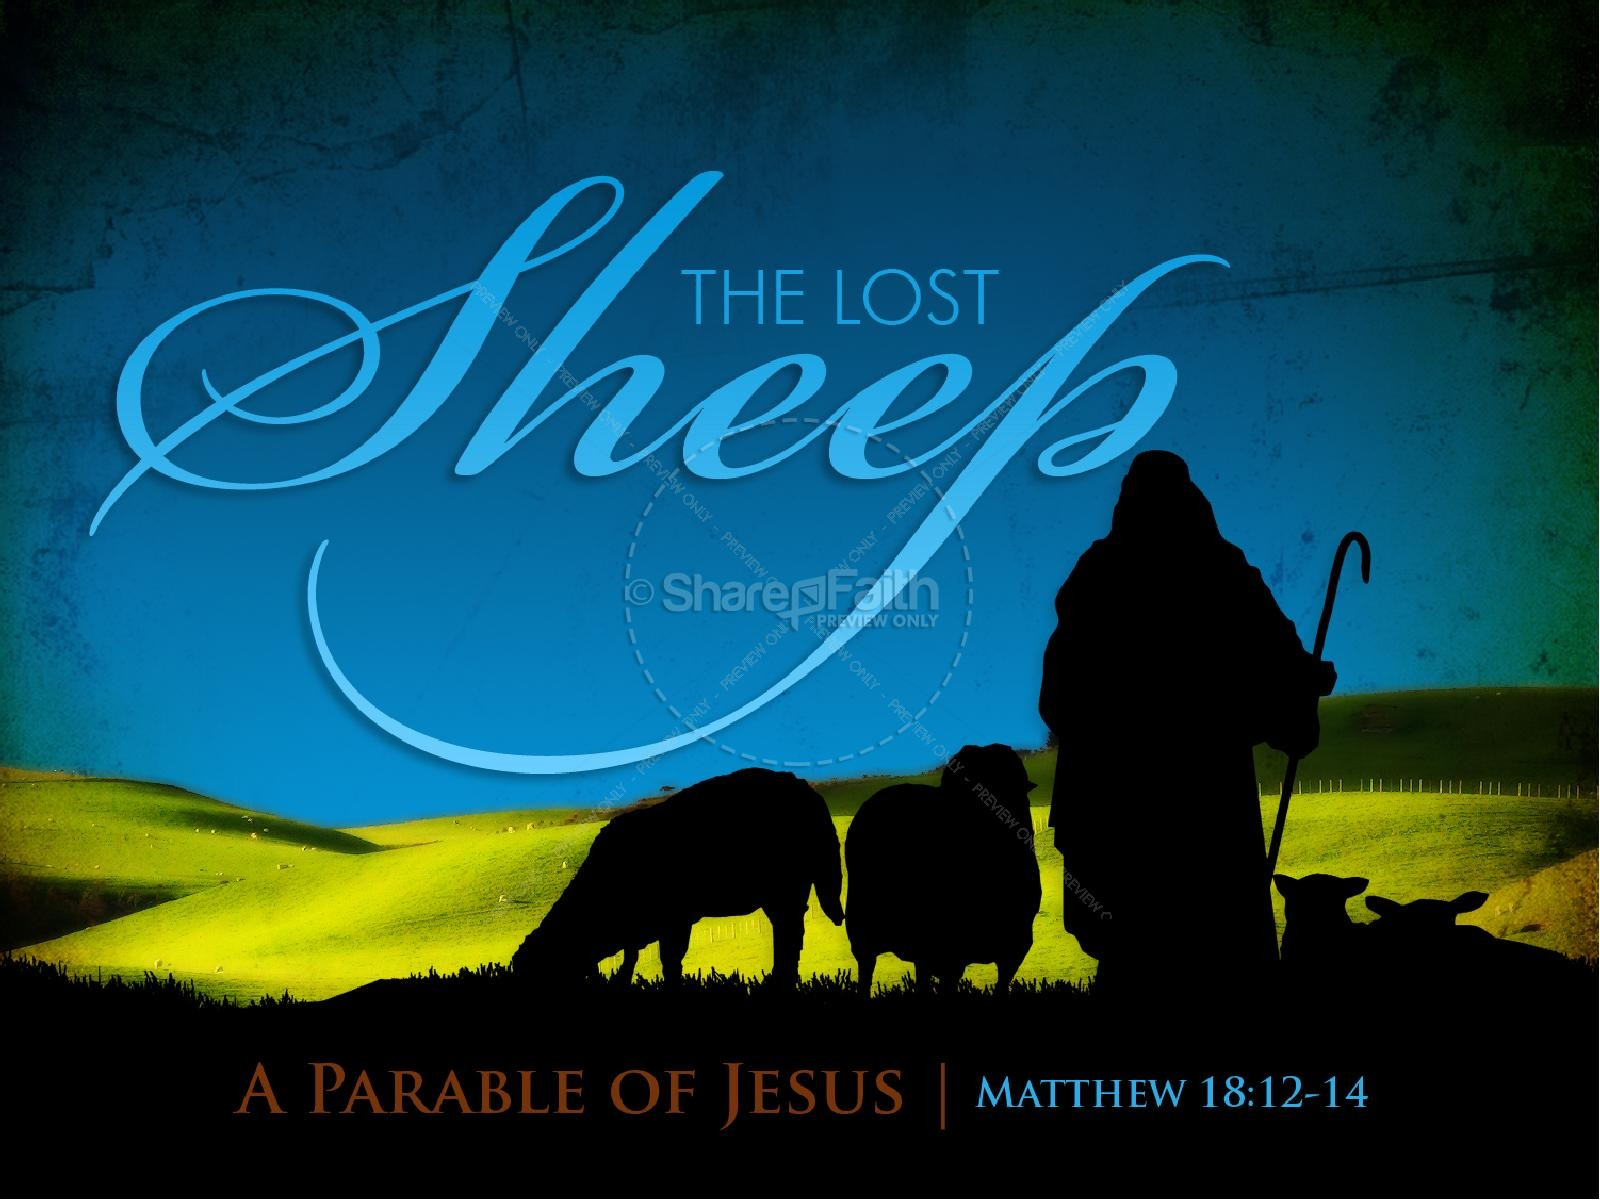 lost sheep sermon powerpoint powerpoint sermons